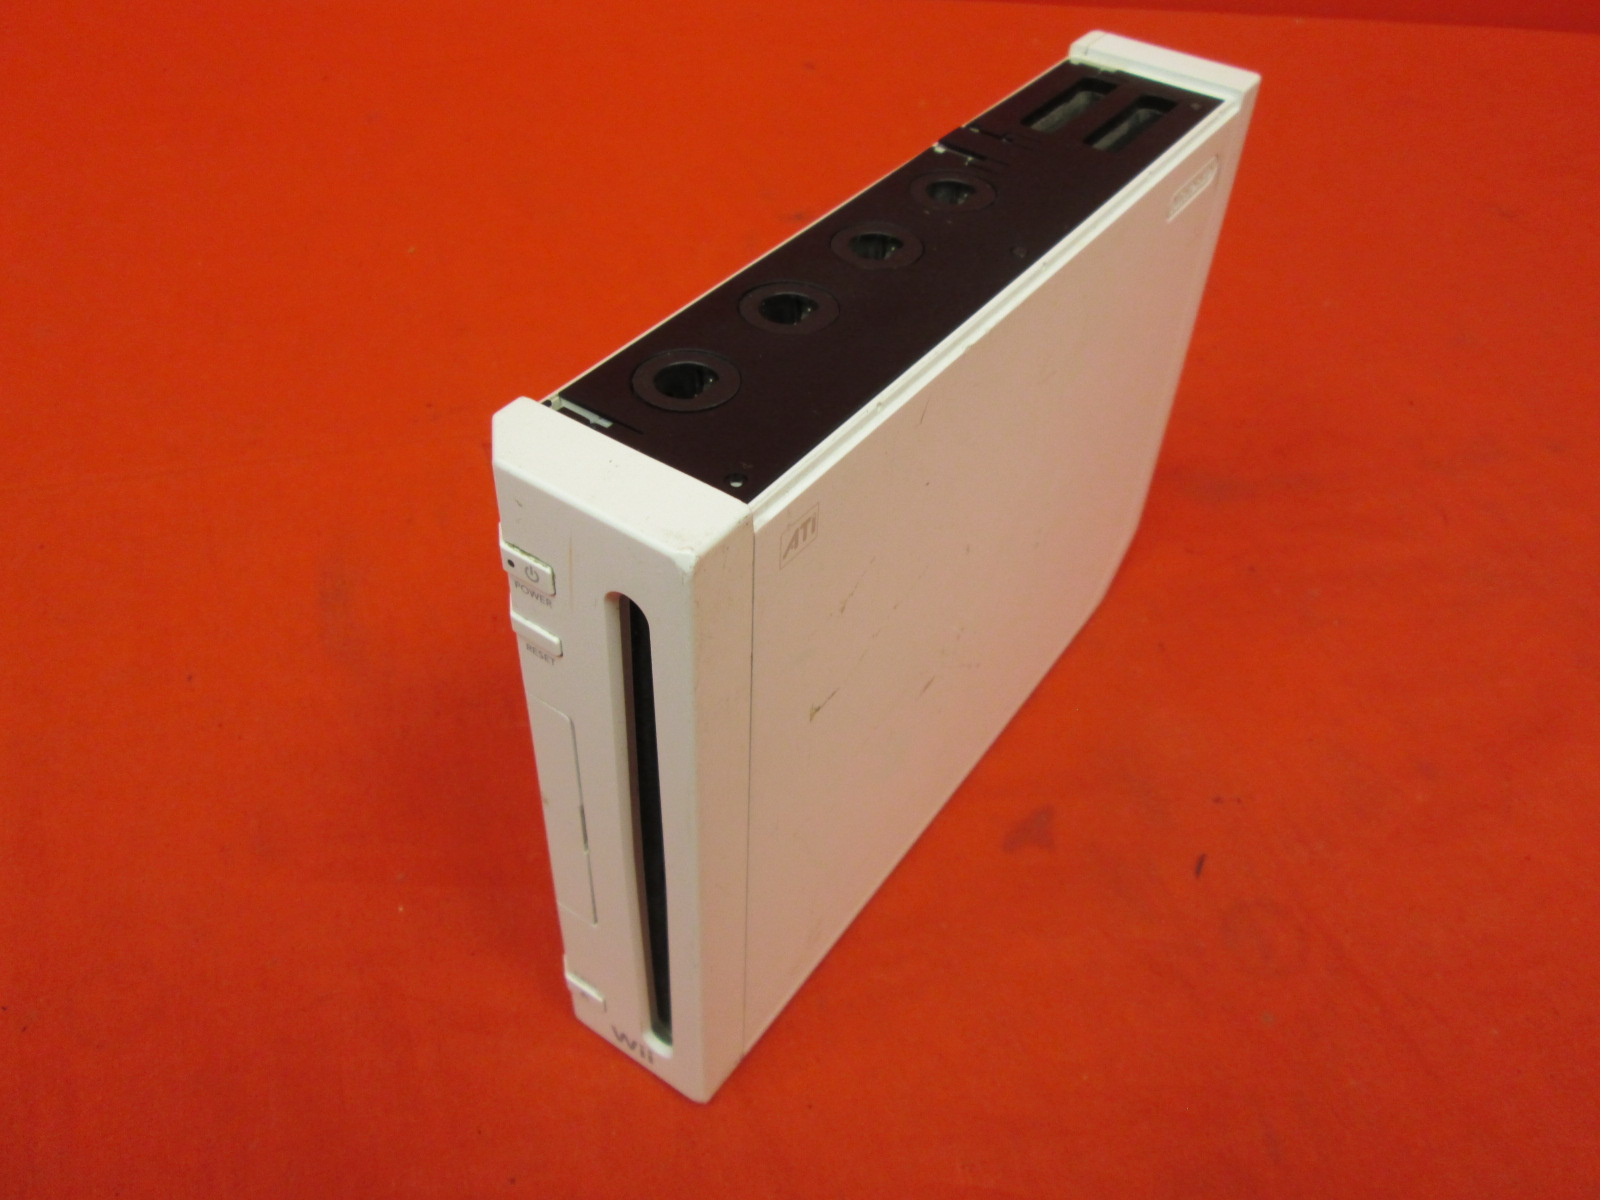 Image 1 of Nintendo Wii Video Game Console With Wiimote Nunchuk Cables